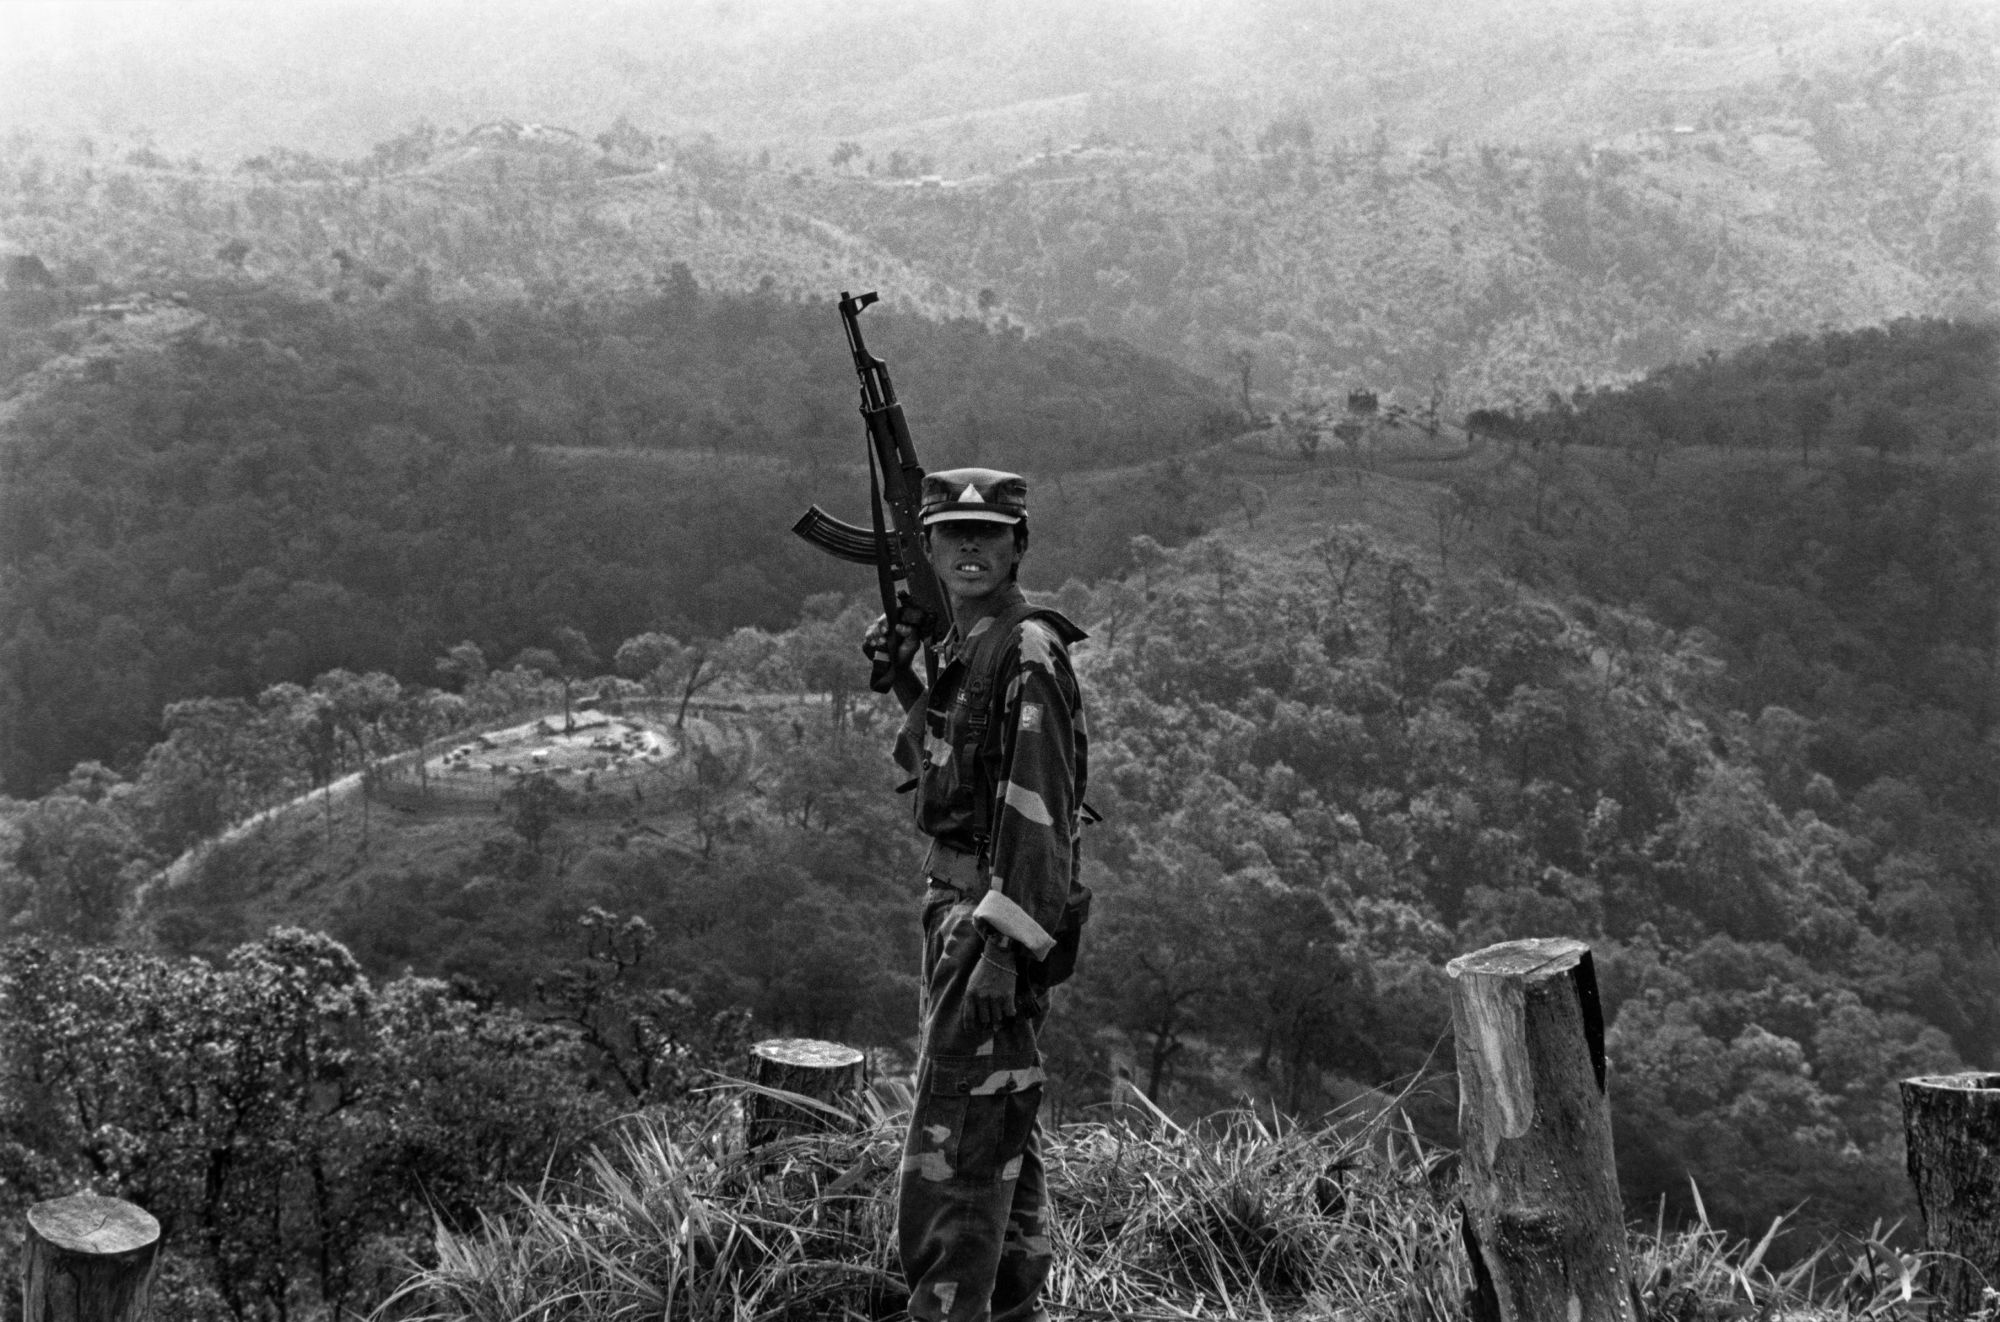 A soldier of the Shan State Army stands guard on the frontline. Behind him is a hill top outpost belonging to the United Wa State Army, who were allies of the Burmese military and Burma's largest drug cartel. The Shan have been fighting for an independent state for decades. December 2005.